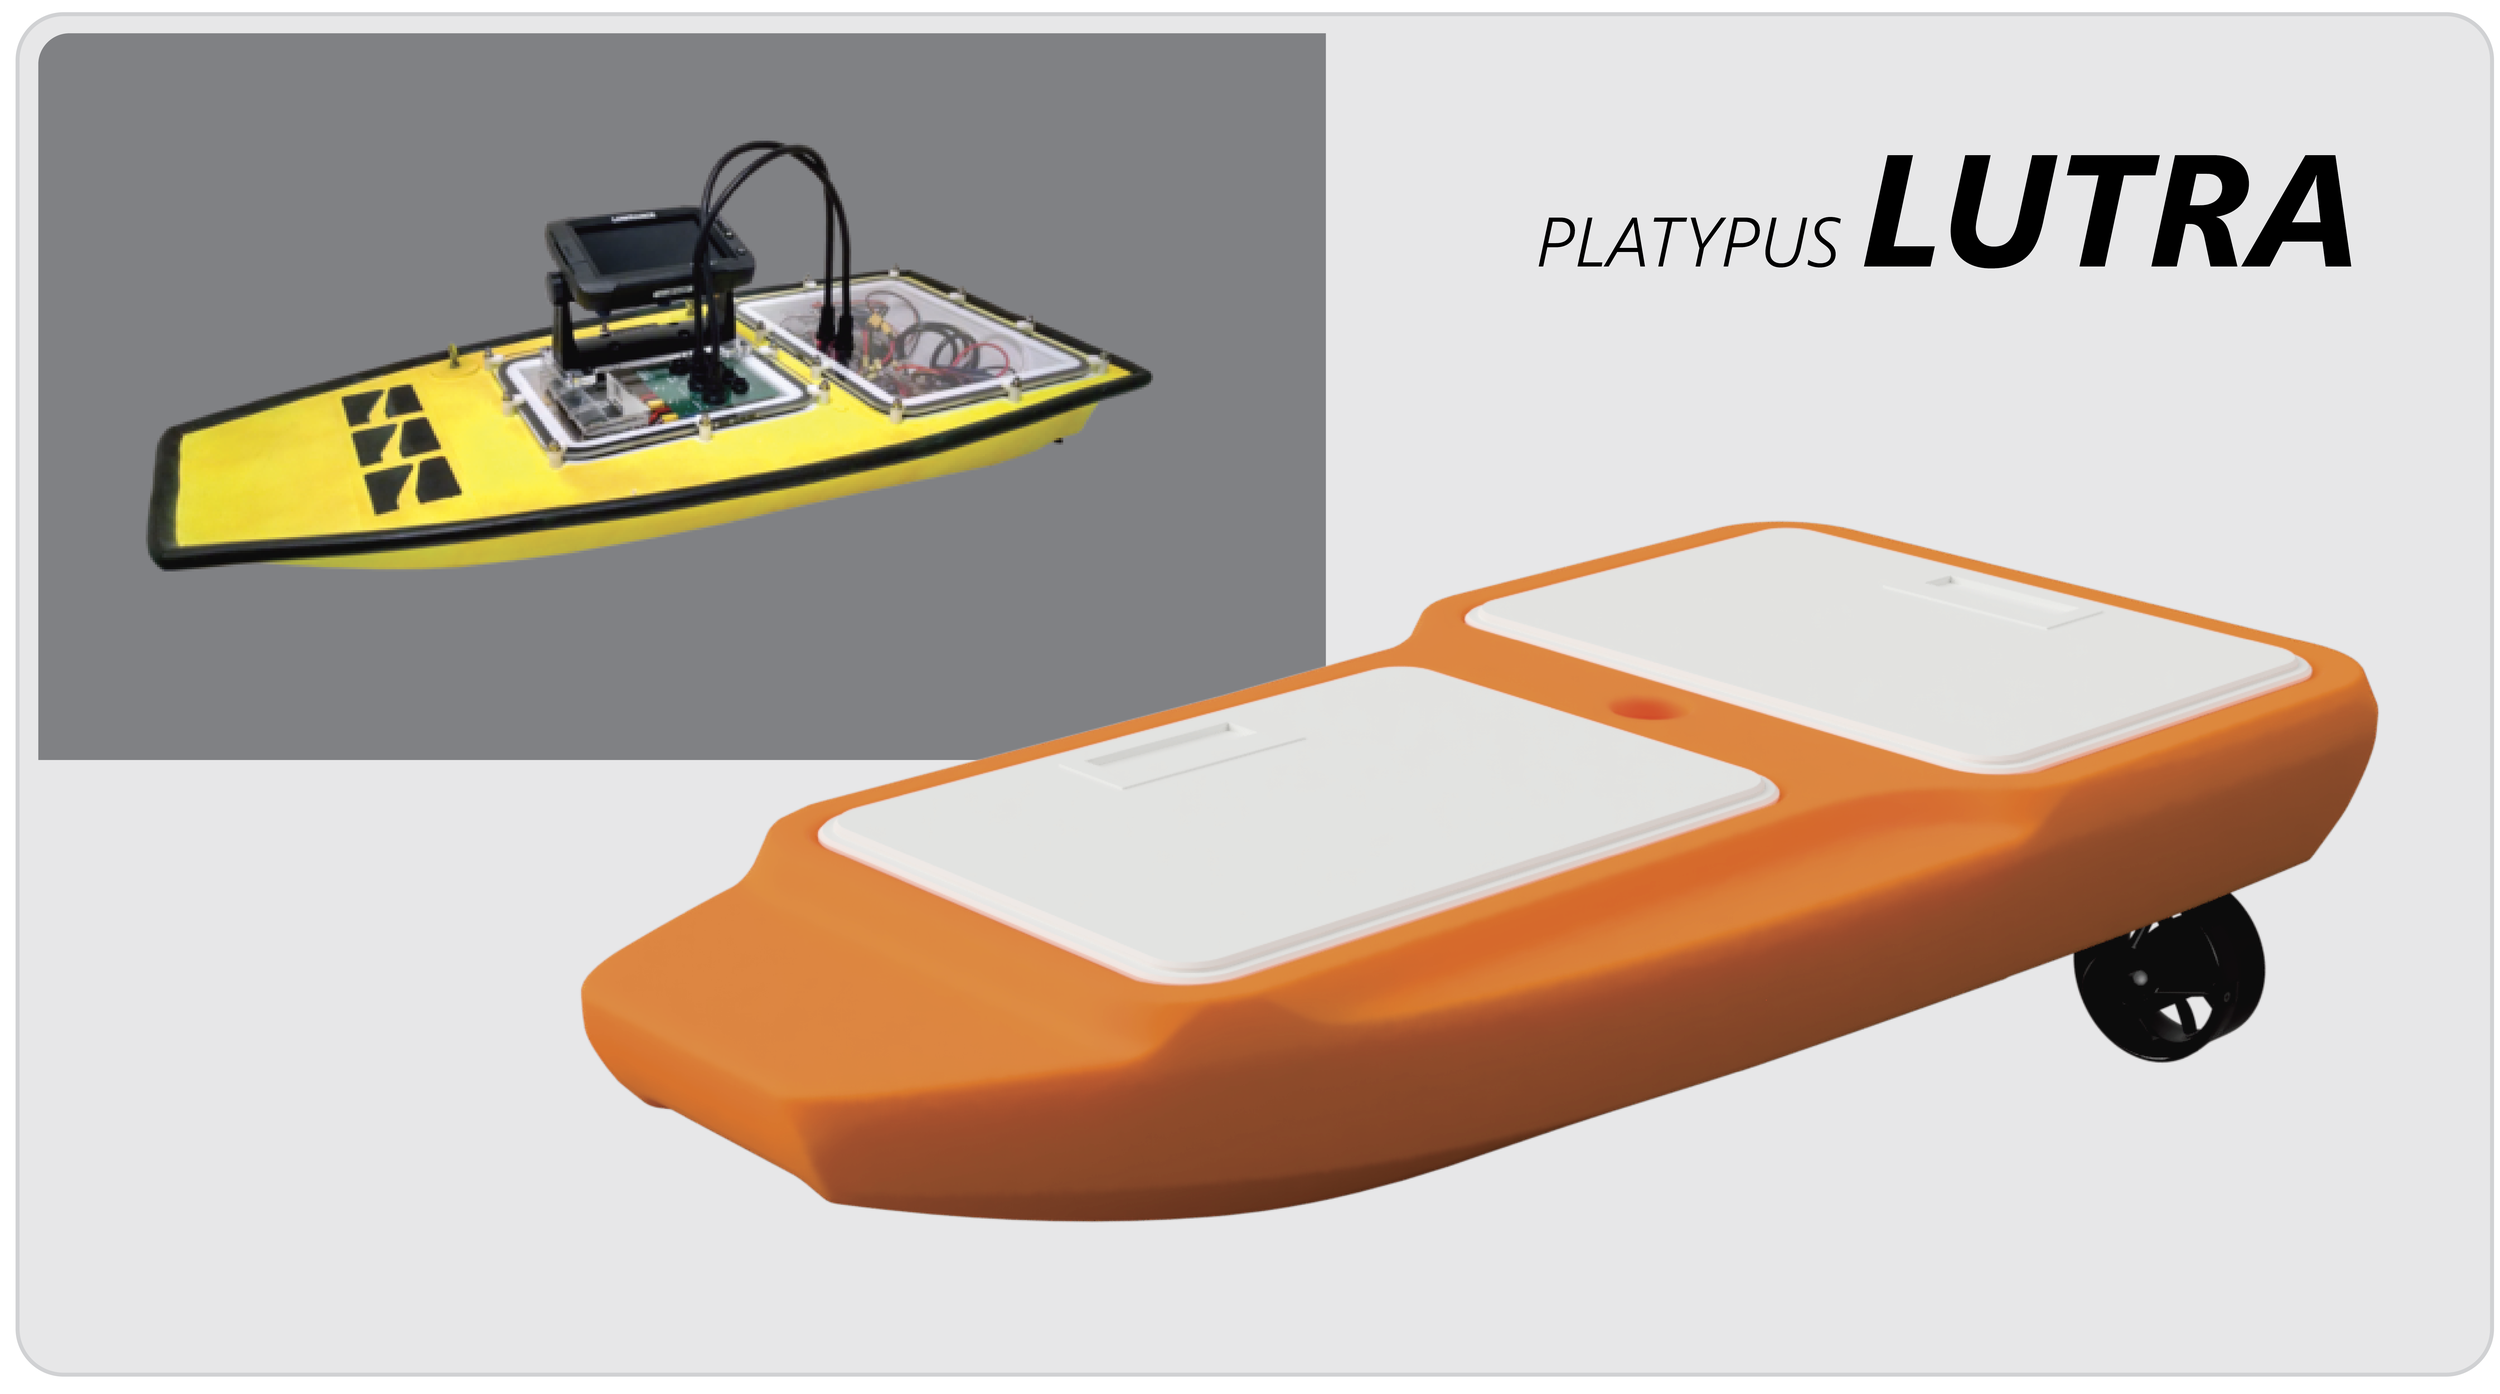 Platypus web summary Lutra-01.png